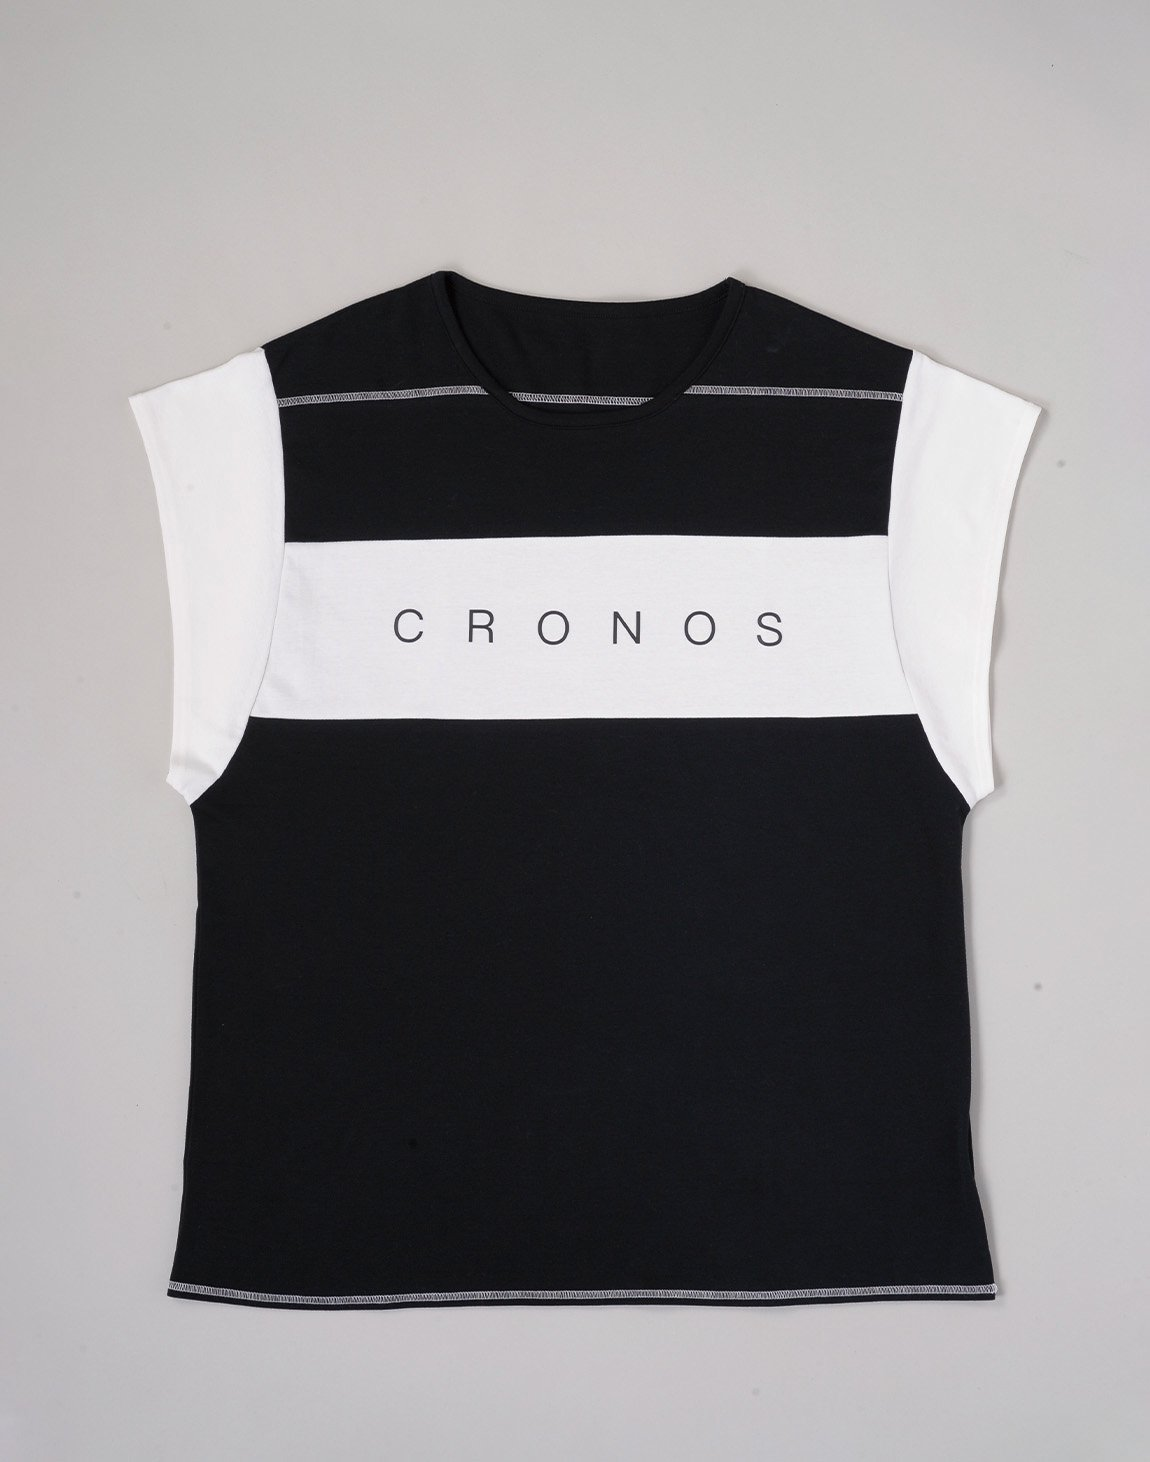 <img class='new_mark_img1' src='https://img.shop-pro.jp/img/new/icons1.gif' style='border:none;display:inline;margin:0px;padding:0px;width:auto;' />CRONOS BANNER LOGO TOPS【BLACK】